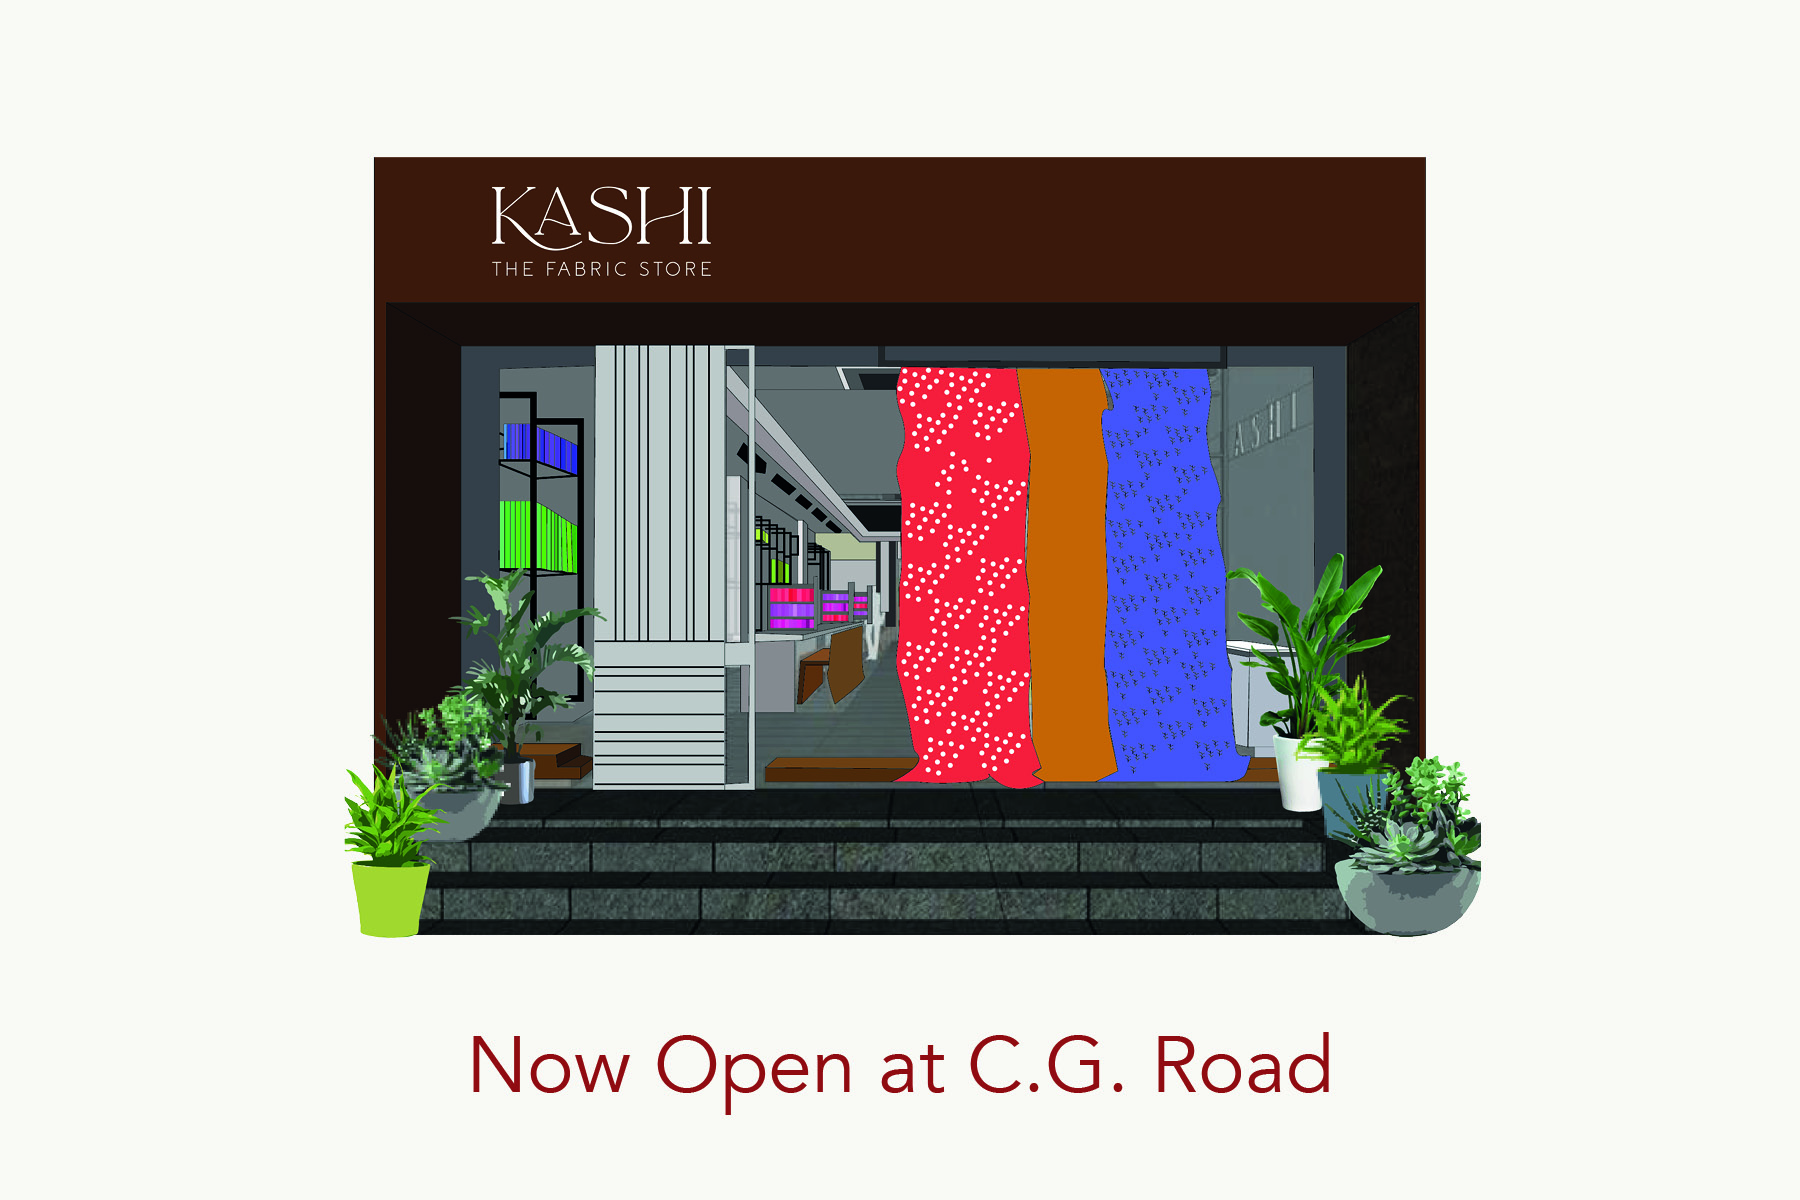 Kashi- The Fabric Store launches its first standalone store in Ahmedabad